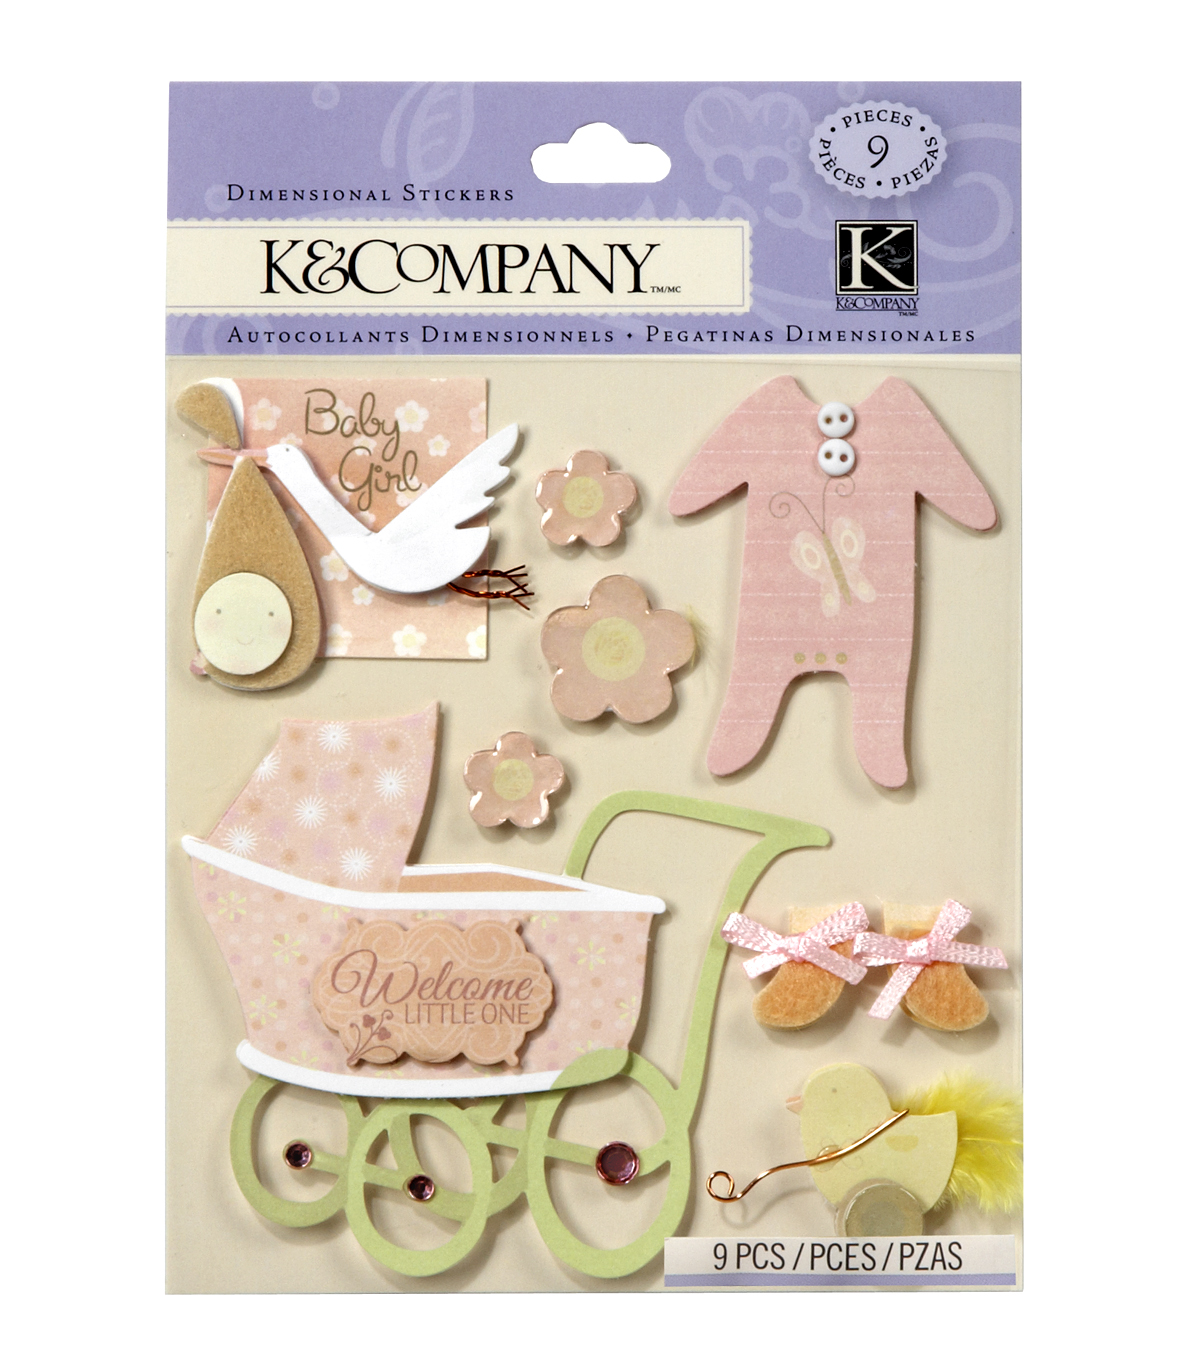 K&Company 9 pk Dimensional Stickers-Baby Girl